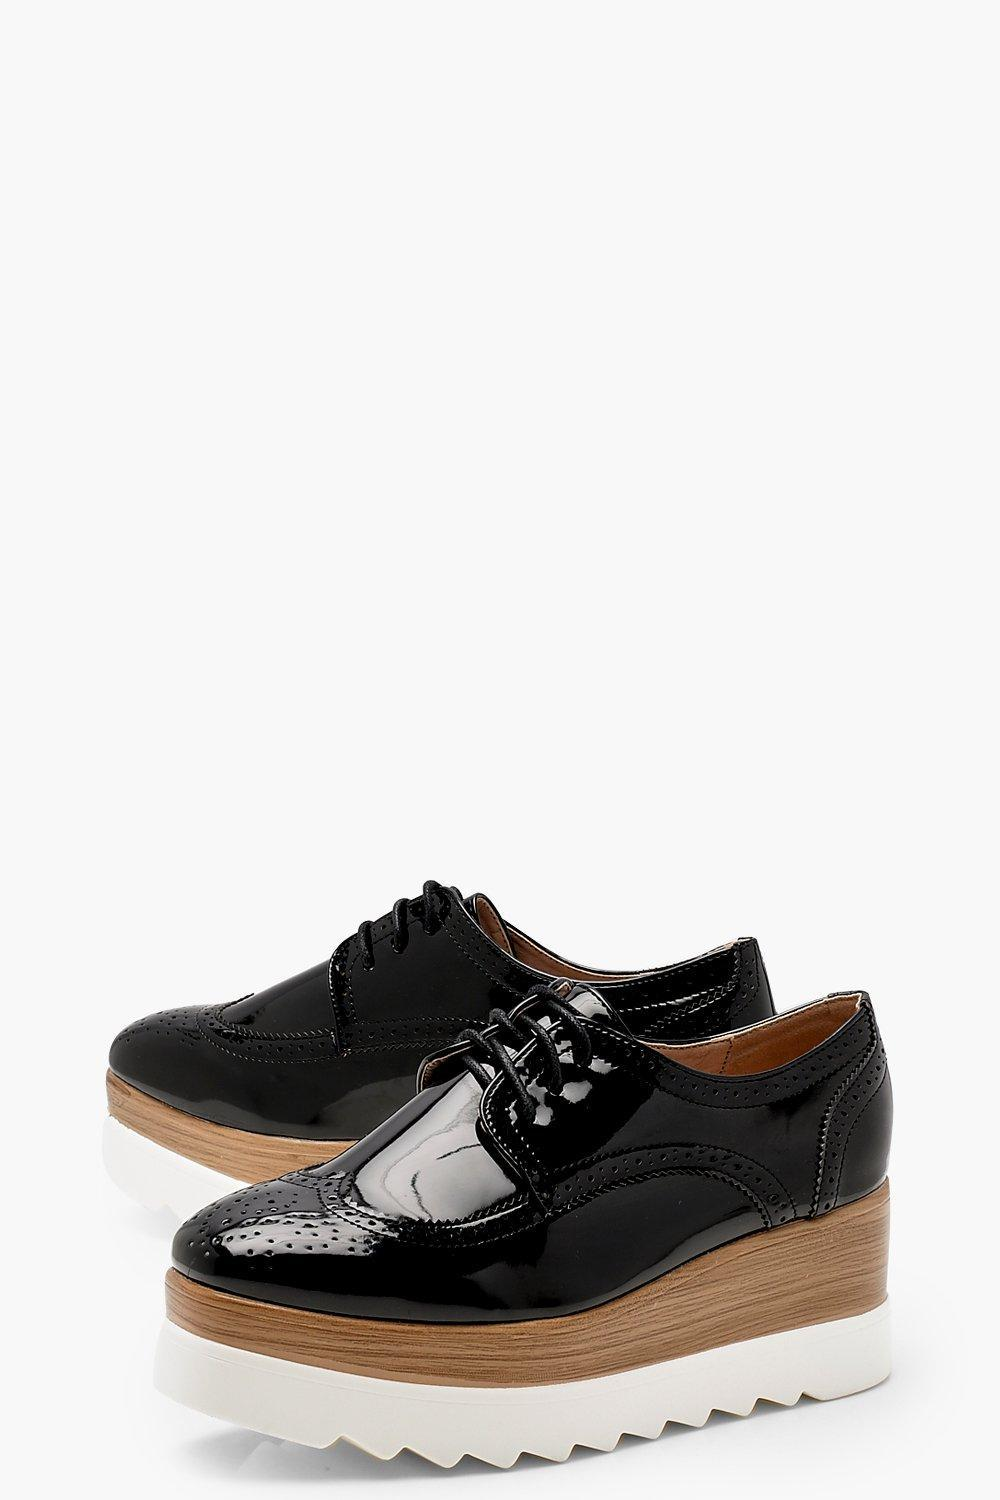 Mia Cleated Lace Up Brogues RBNBc